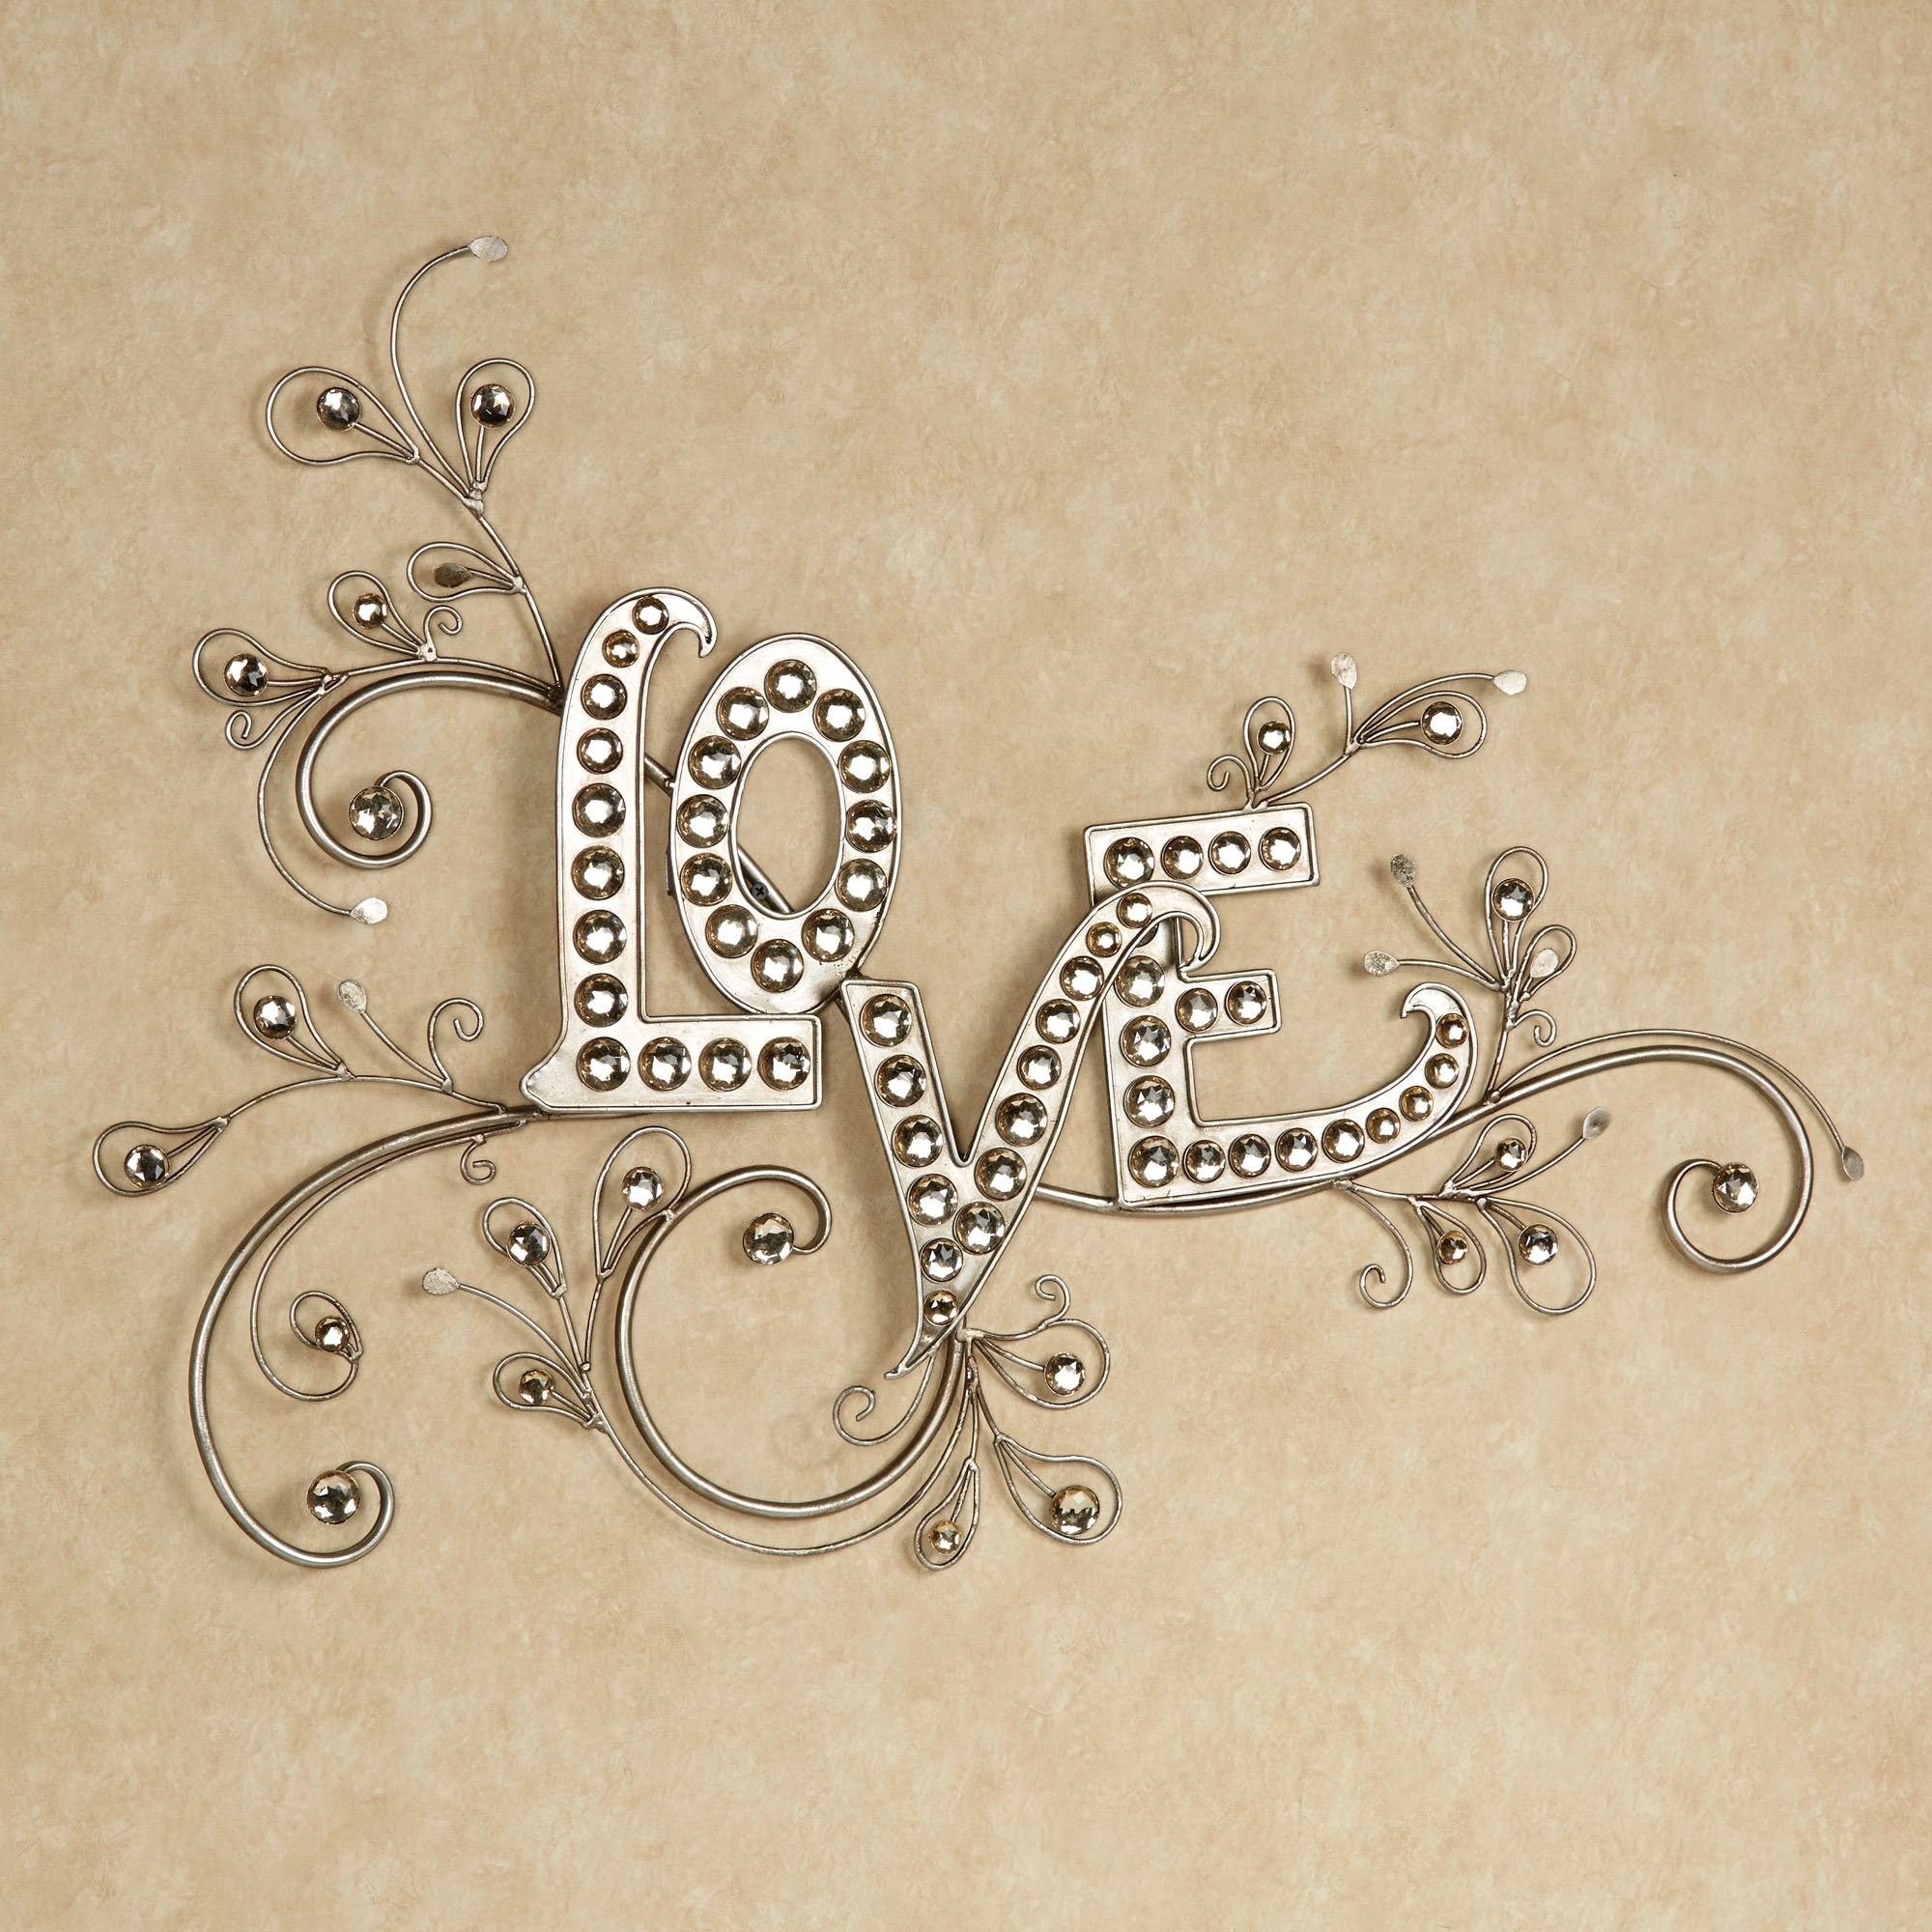 Creative Design Love Wall Decor Home Remodel Sparkling Gem Word Art Regarding Recent Kohl\'s Metal Wall Art (View 10 of 20)